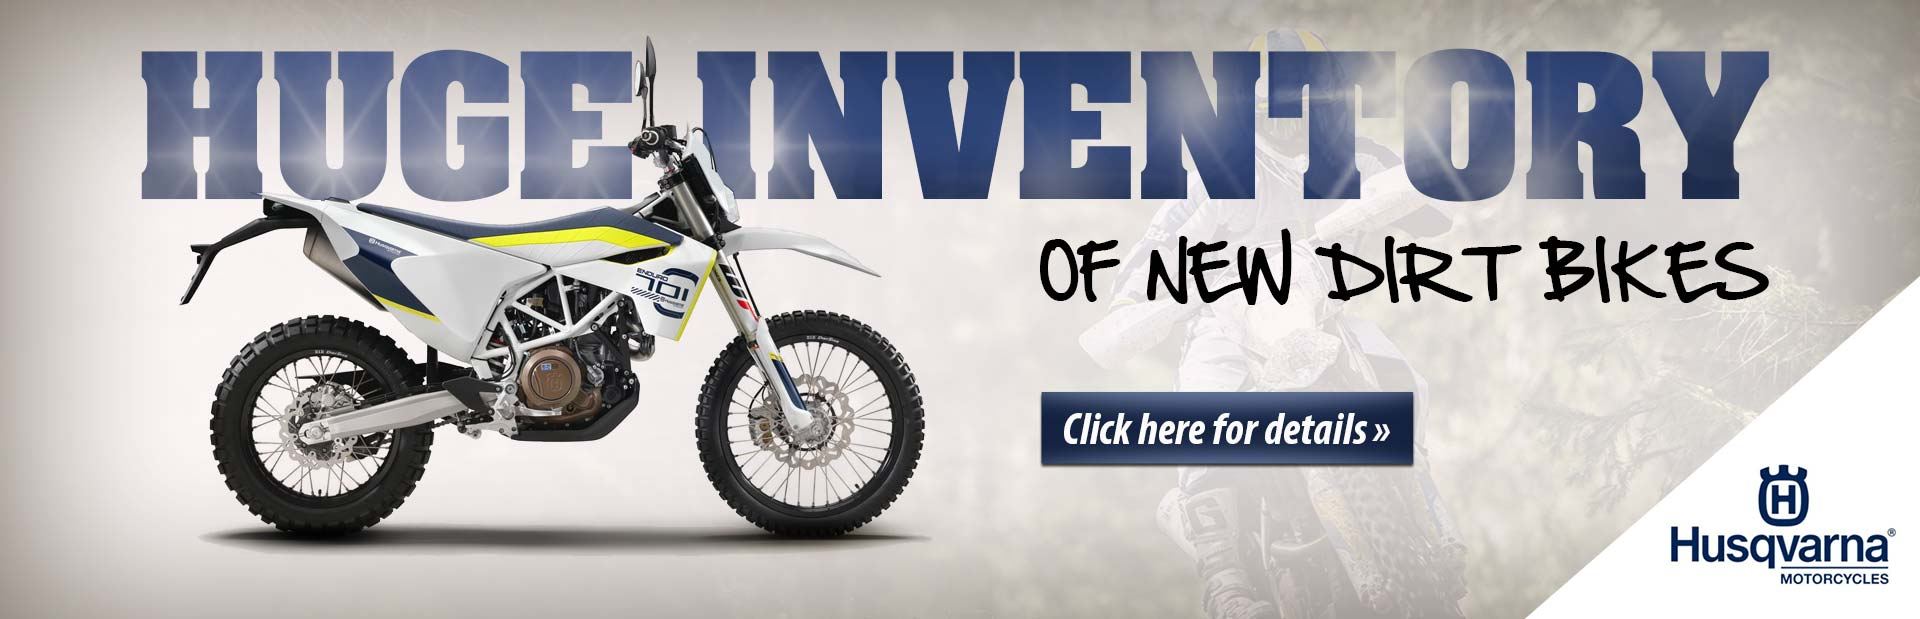 Reno Ktm Nevada Motorcycle Specialties Sparks Nv 775 358 4388 Backflow Preventer Diagram Car Tuning We Have A Huge Inventory Of New Husqvarna Dirt Bikes Click Here For Details